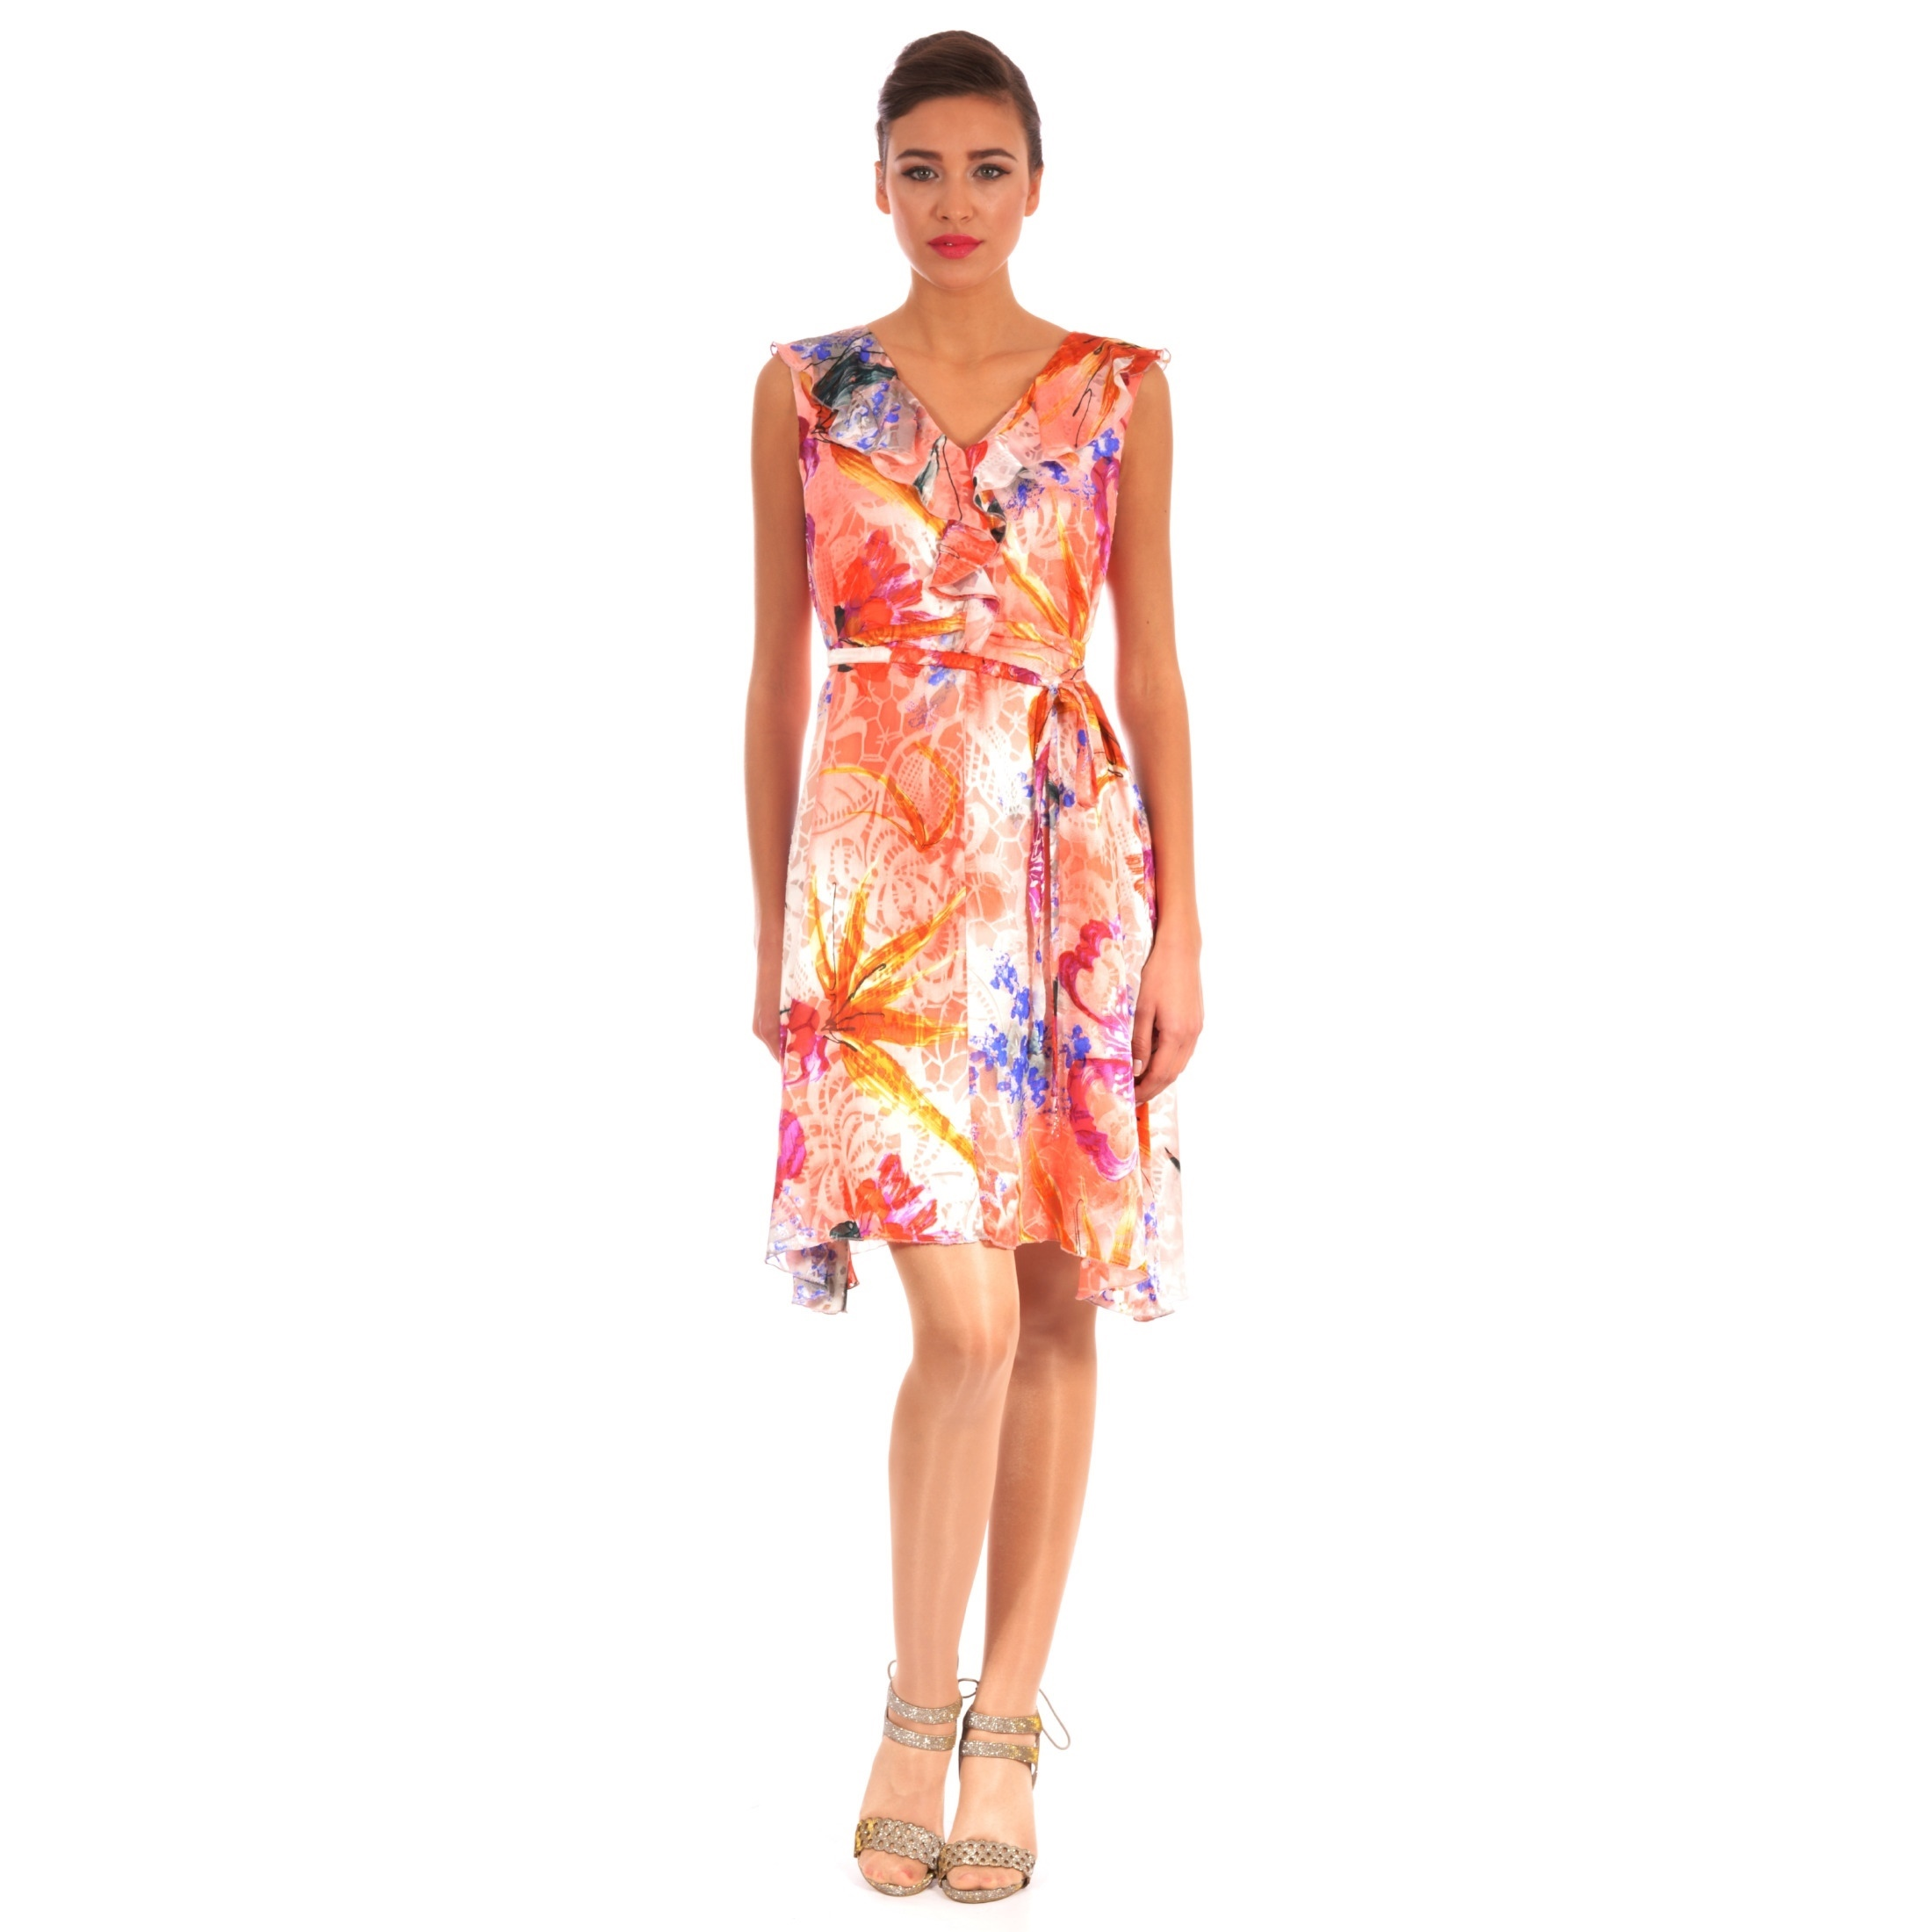 beautiful women's light flowered dress, prekrasna cvijetna ljetna haljina lady m